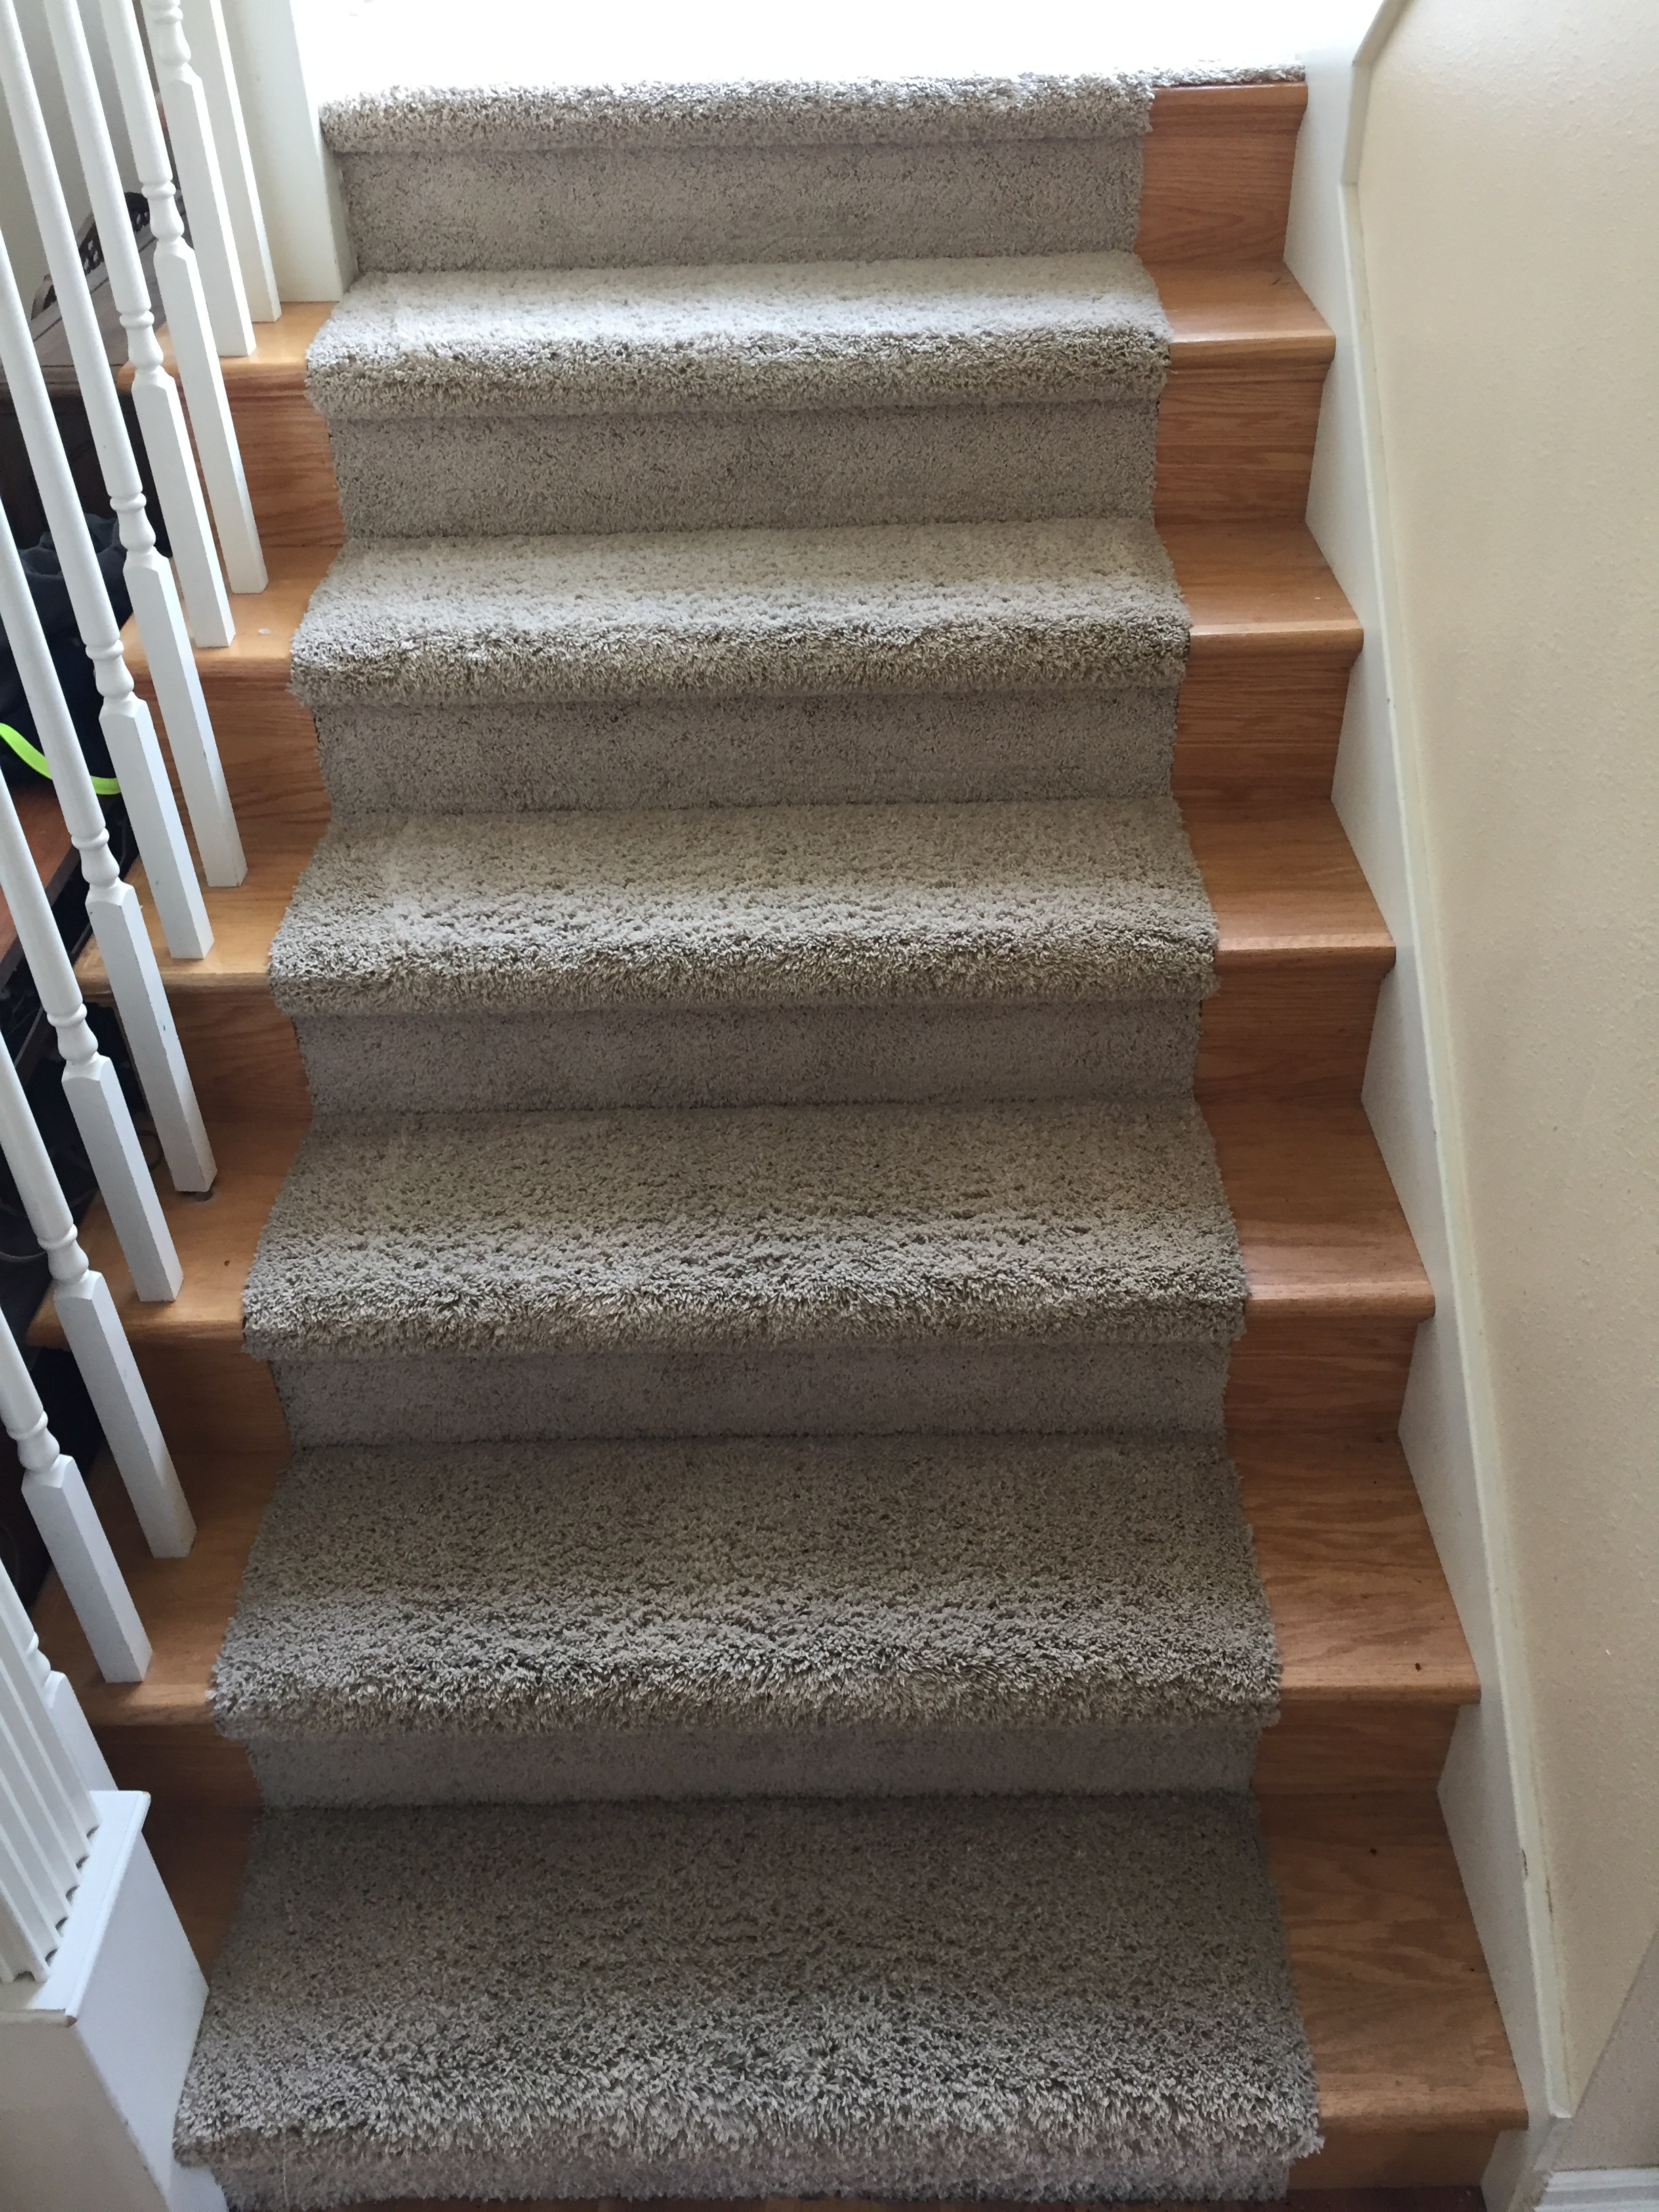 Edmonds carpet cleaning stairs after